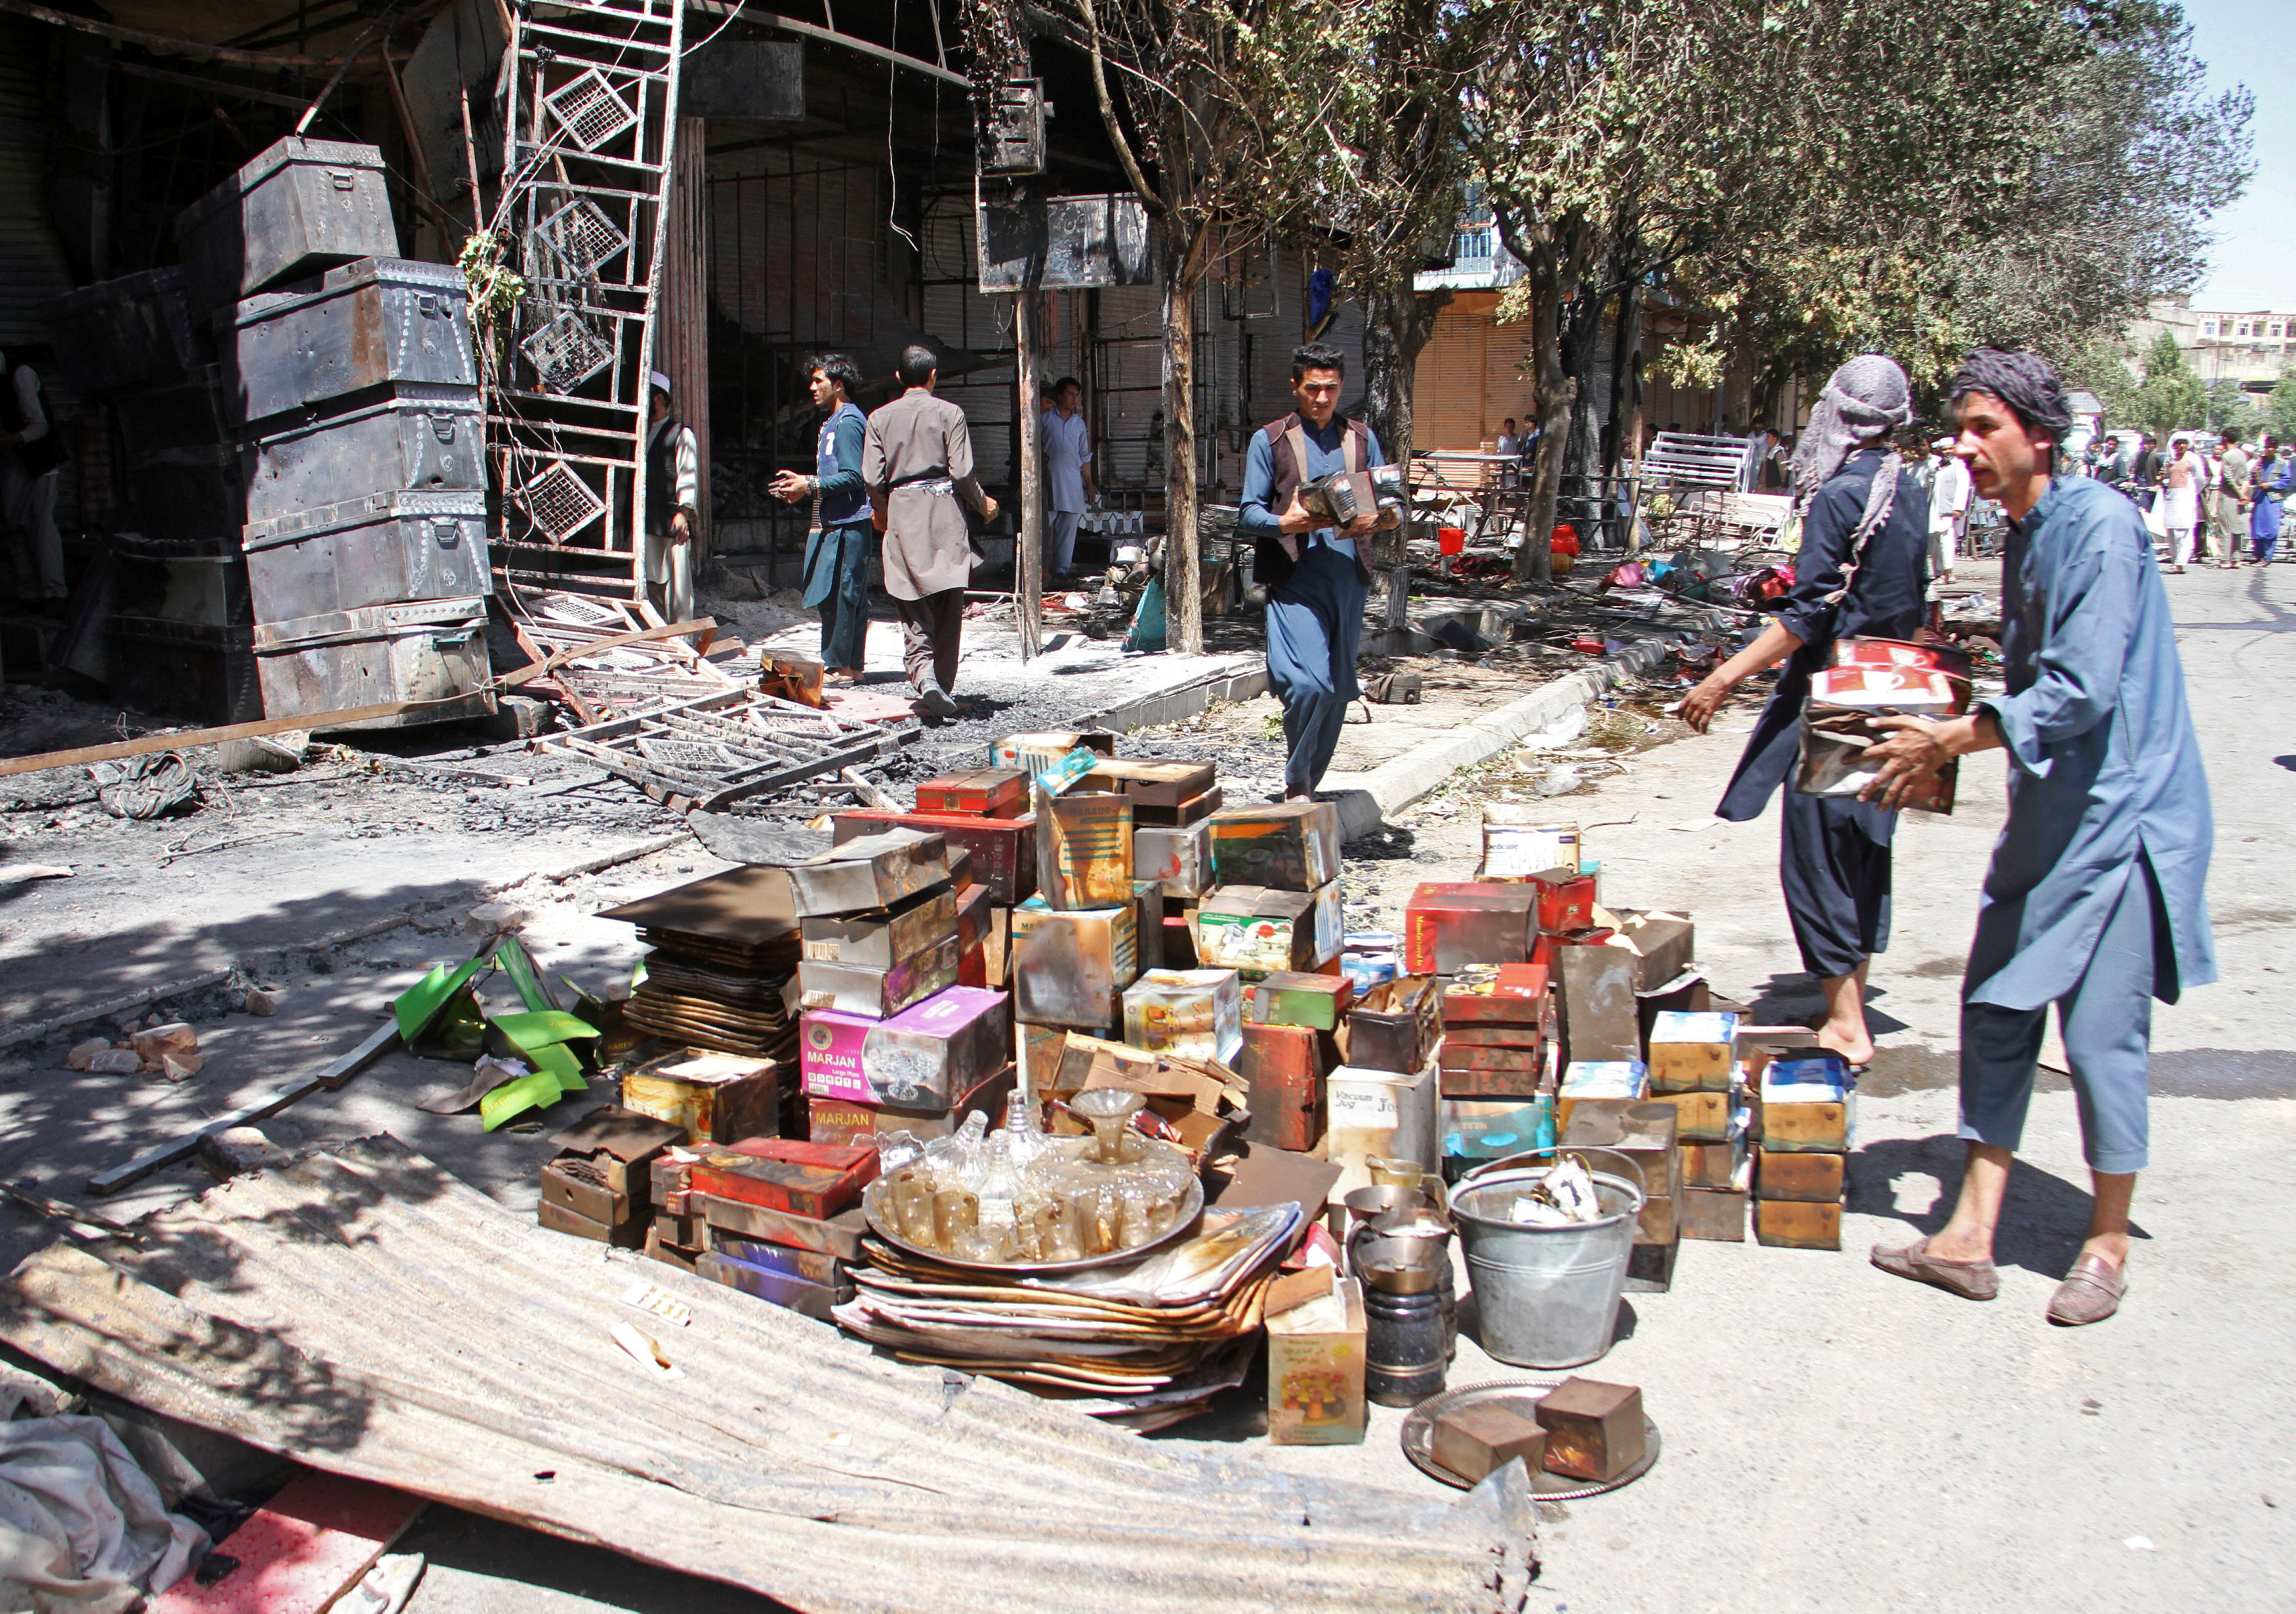 Afghan shopkeepers try to recover items from burning shops after a Taliban attack in Ghazni city, Afghanistan, Aug. 14, 2018.